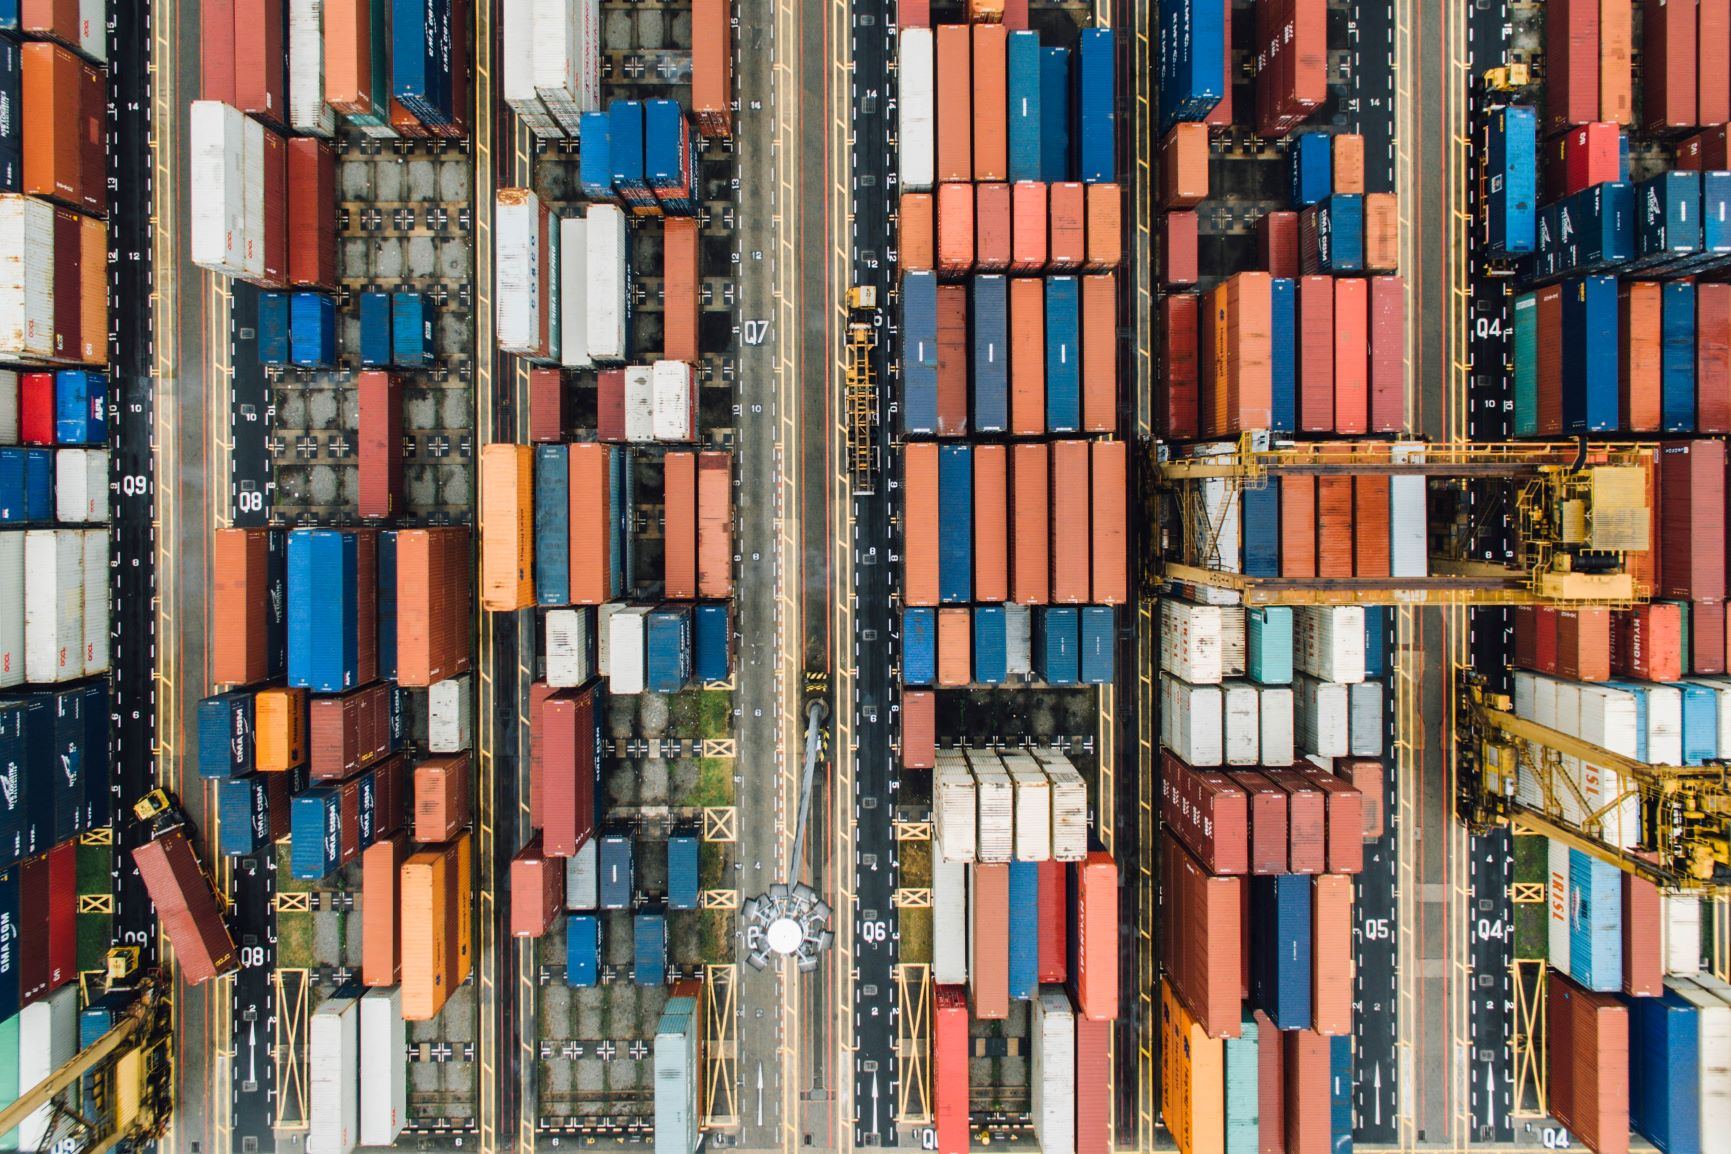 Overhead photo of trading containers